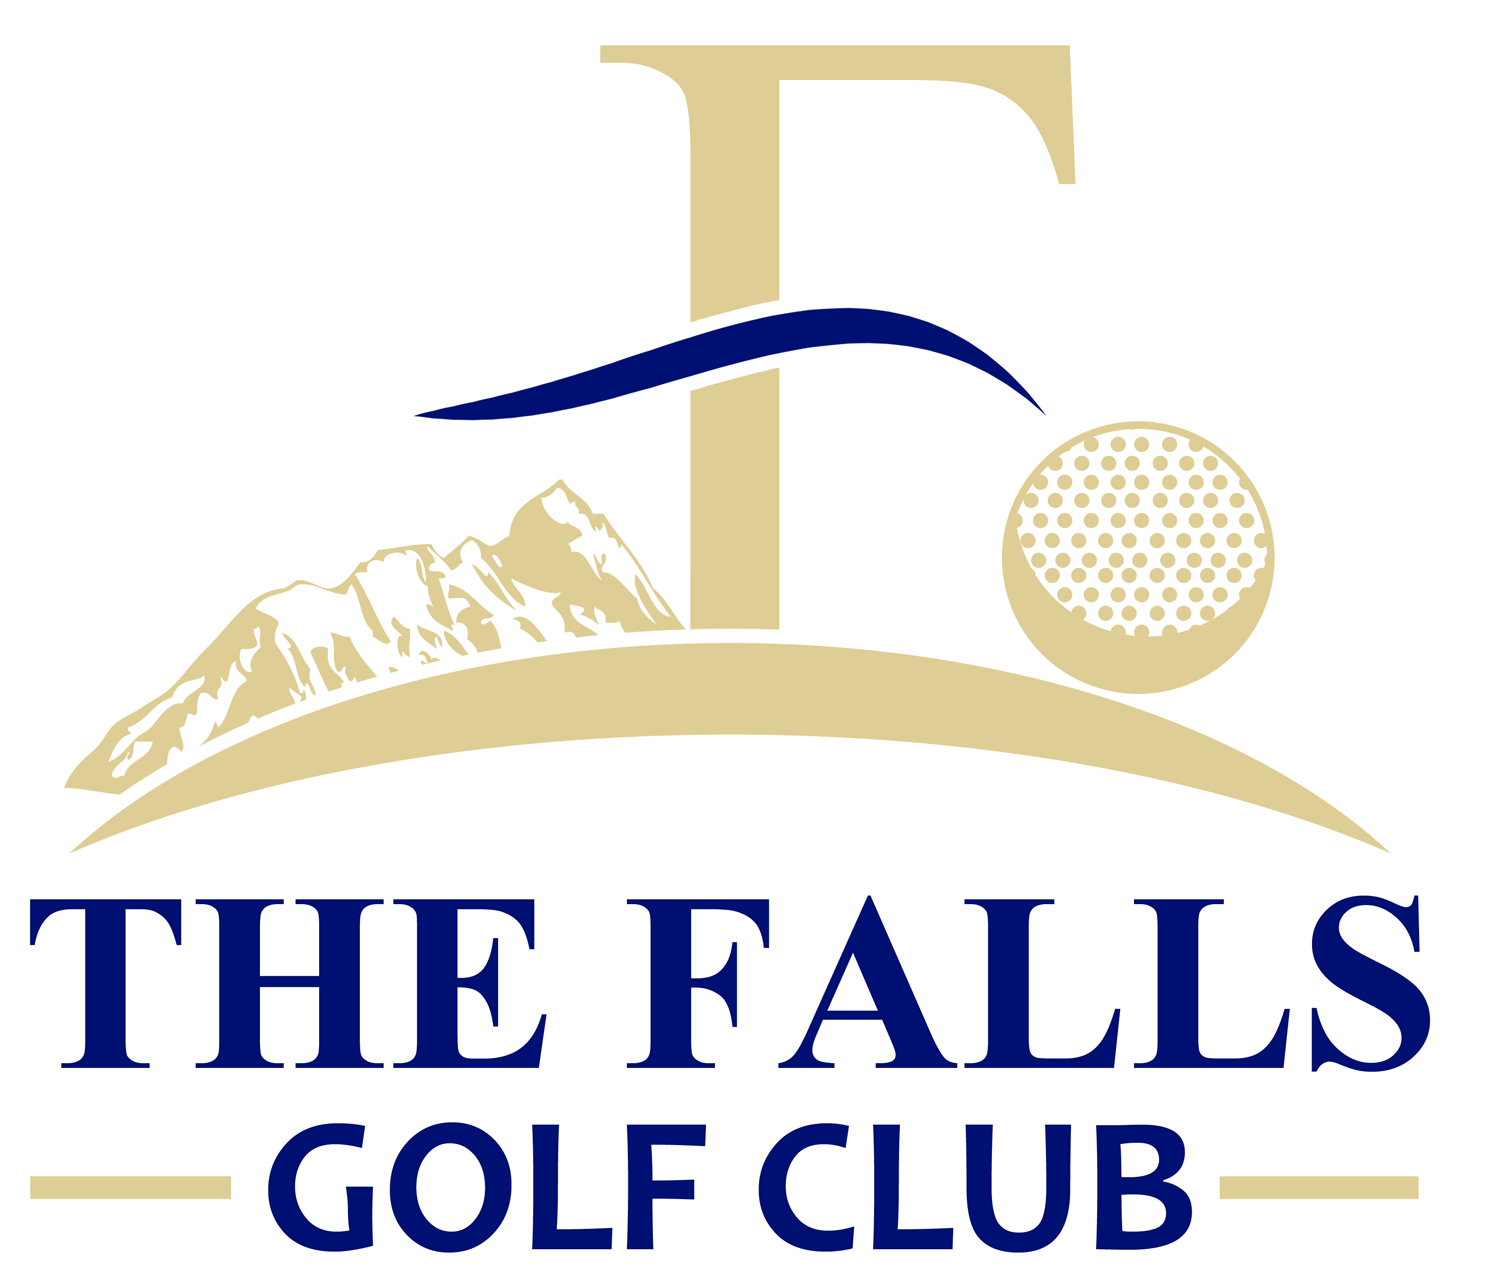 Logo Design by Jeff Gilmet - Entry No. 1 in the Logo Design Contest The Falls Golf Club Logo Design.